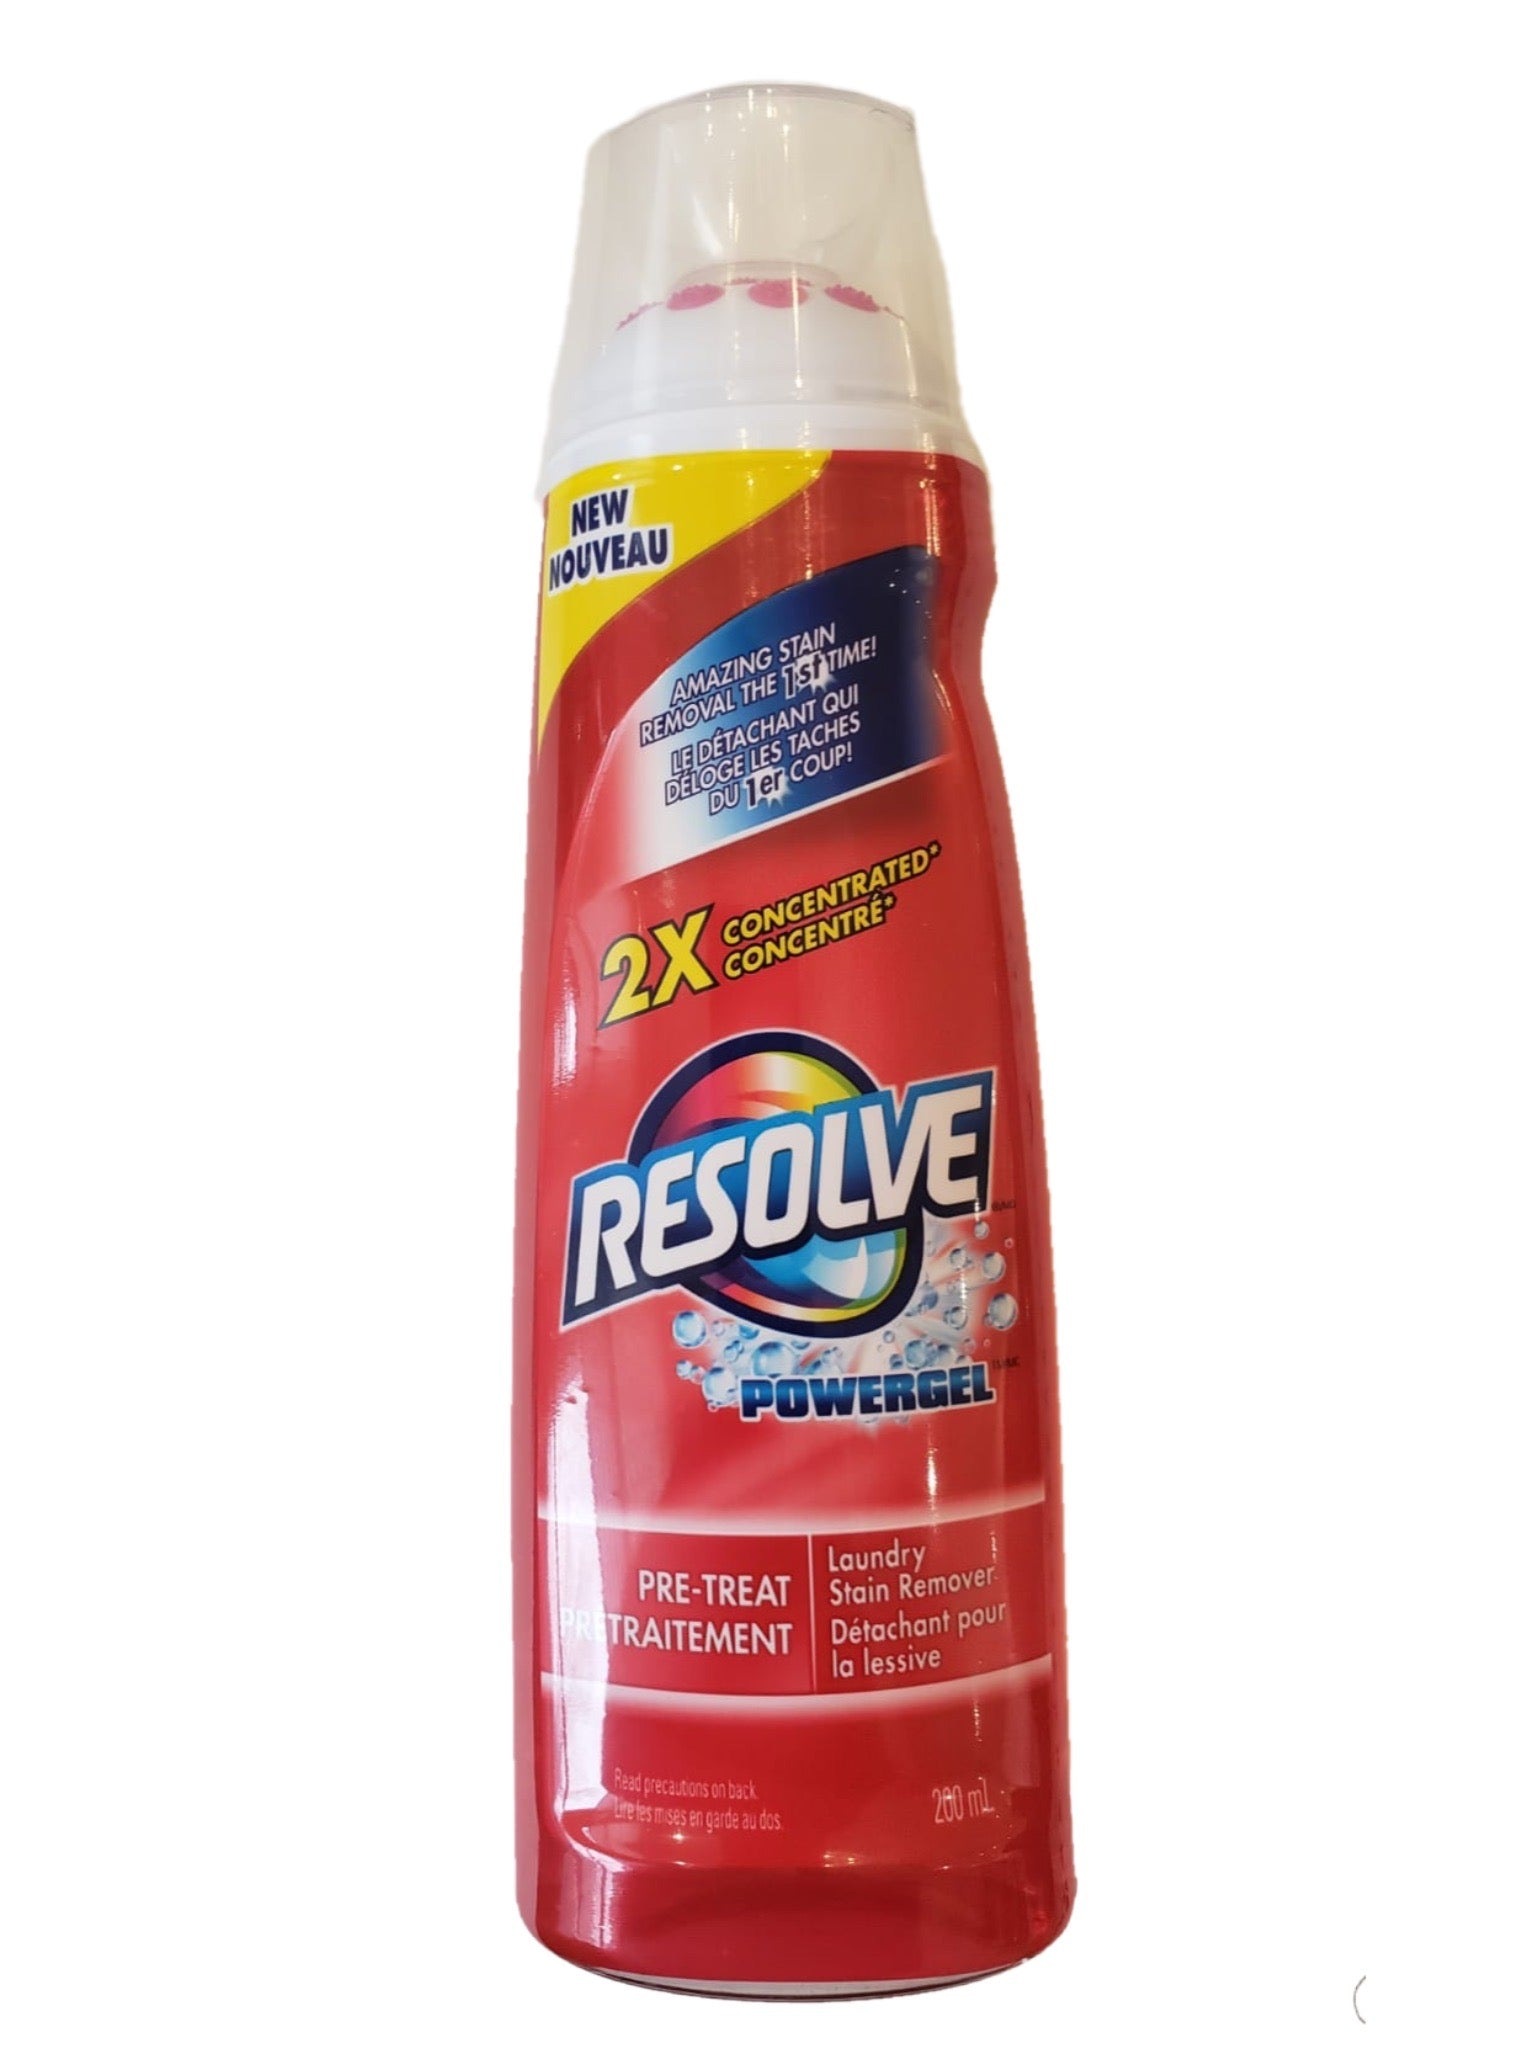 RESOLVE Powergel Laundry Stain Remover 200ml